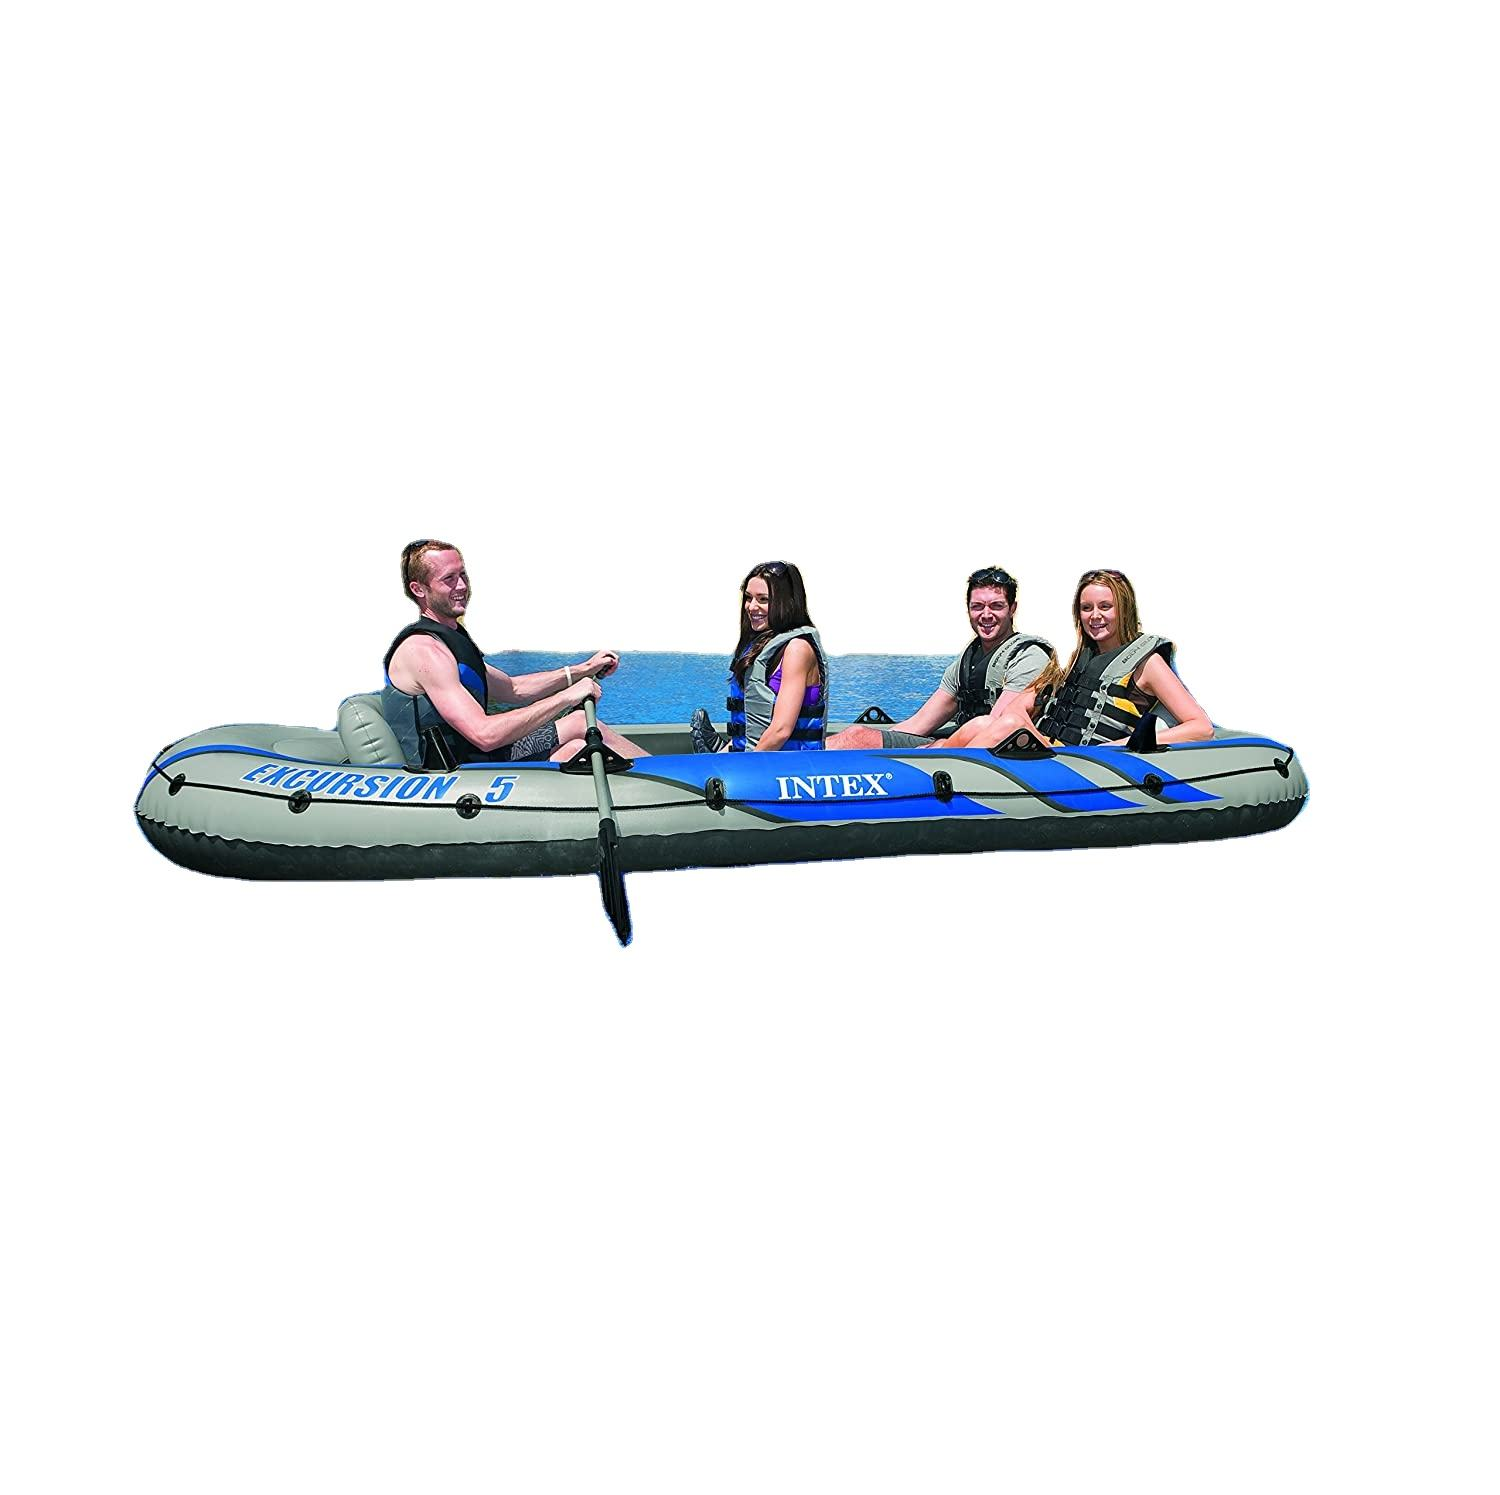 Pool accesorize floats - Inflatable Boat Intex 68325 Excursion 5 Inflatable Boat - outdoors activities in the nature - water fun